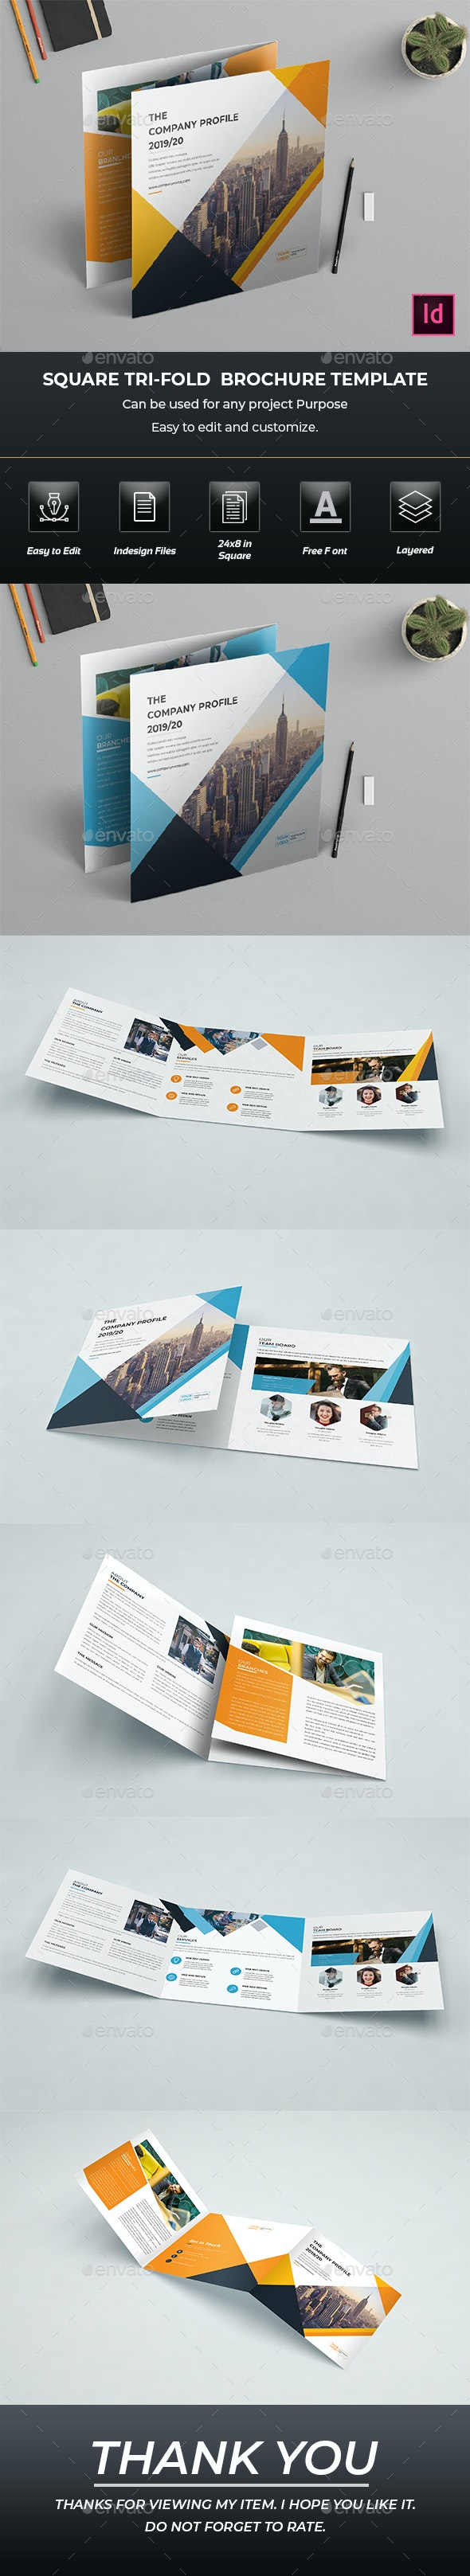 Square Trifold Brochure InDesign Template - Brochures Print Templates